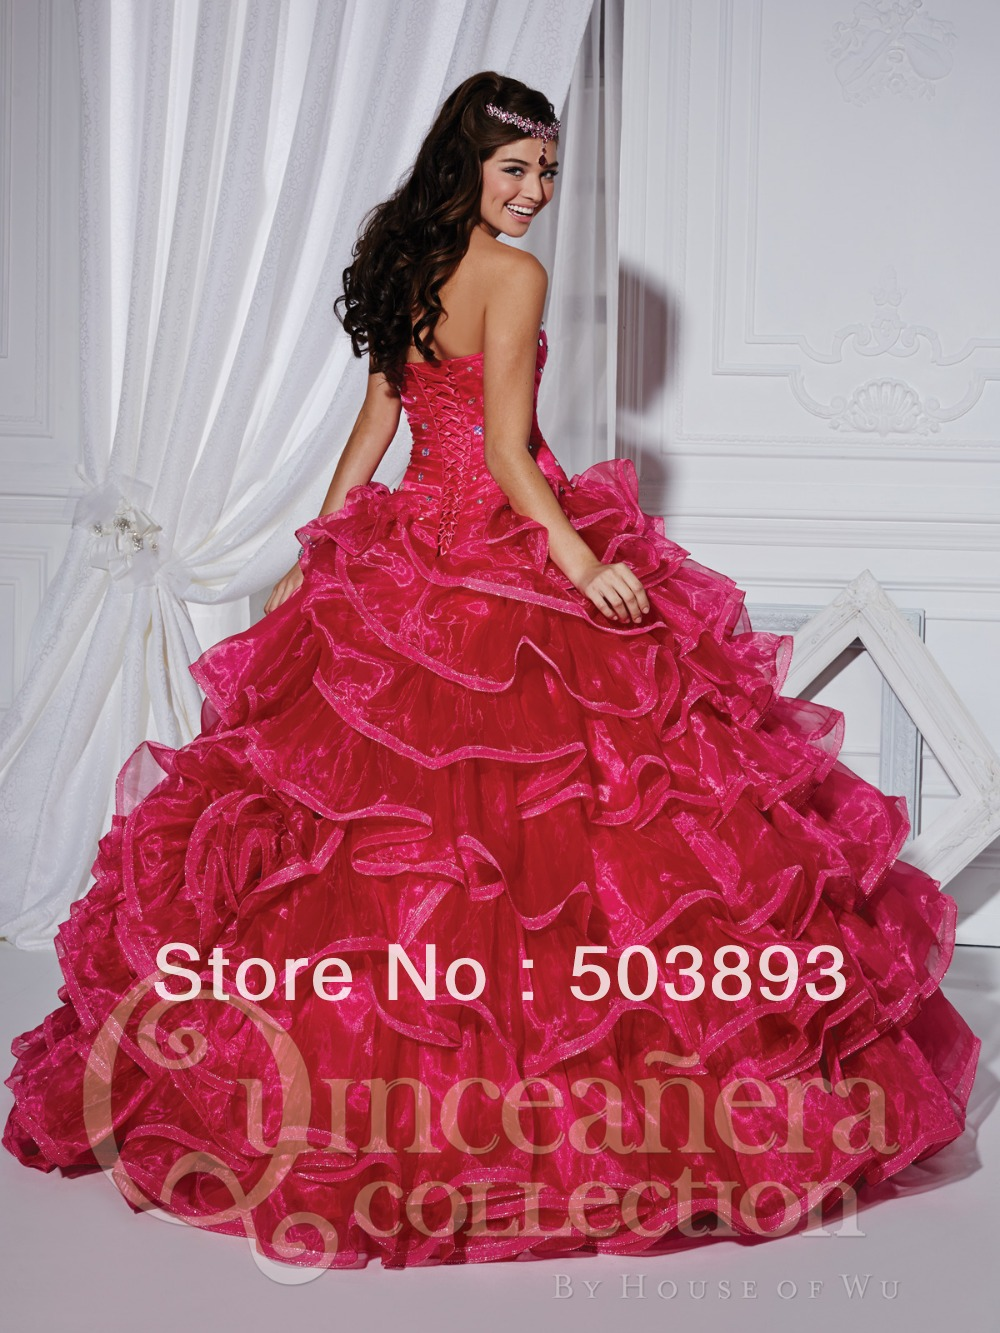 Ball gown prom dresses 2014 - Free Shipping Masquerade Ball Gowns Ruffles Crystal Light Pink Quinceanera Dresses 2014 Sweet 16 Gowns Quinceanera Gowns In Prom Dresses From Weddings